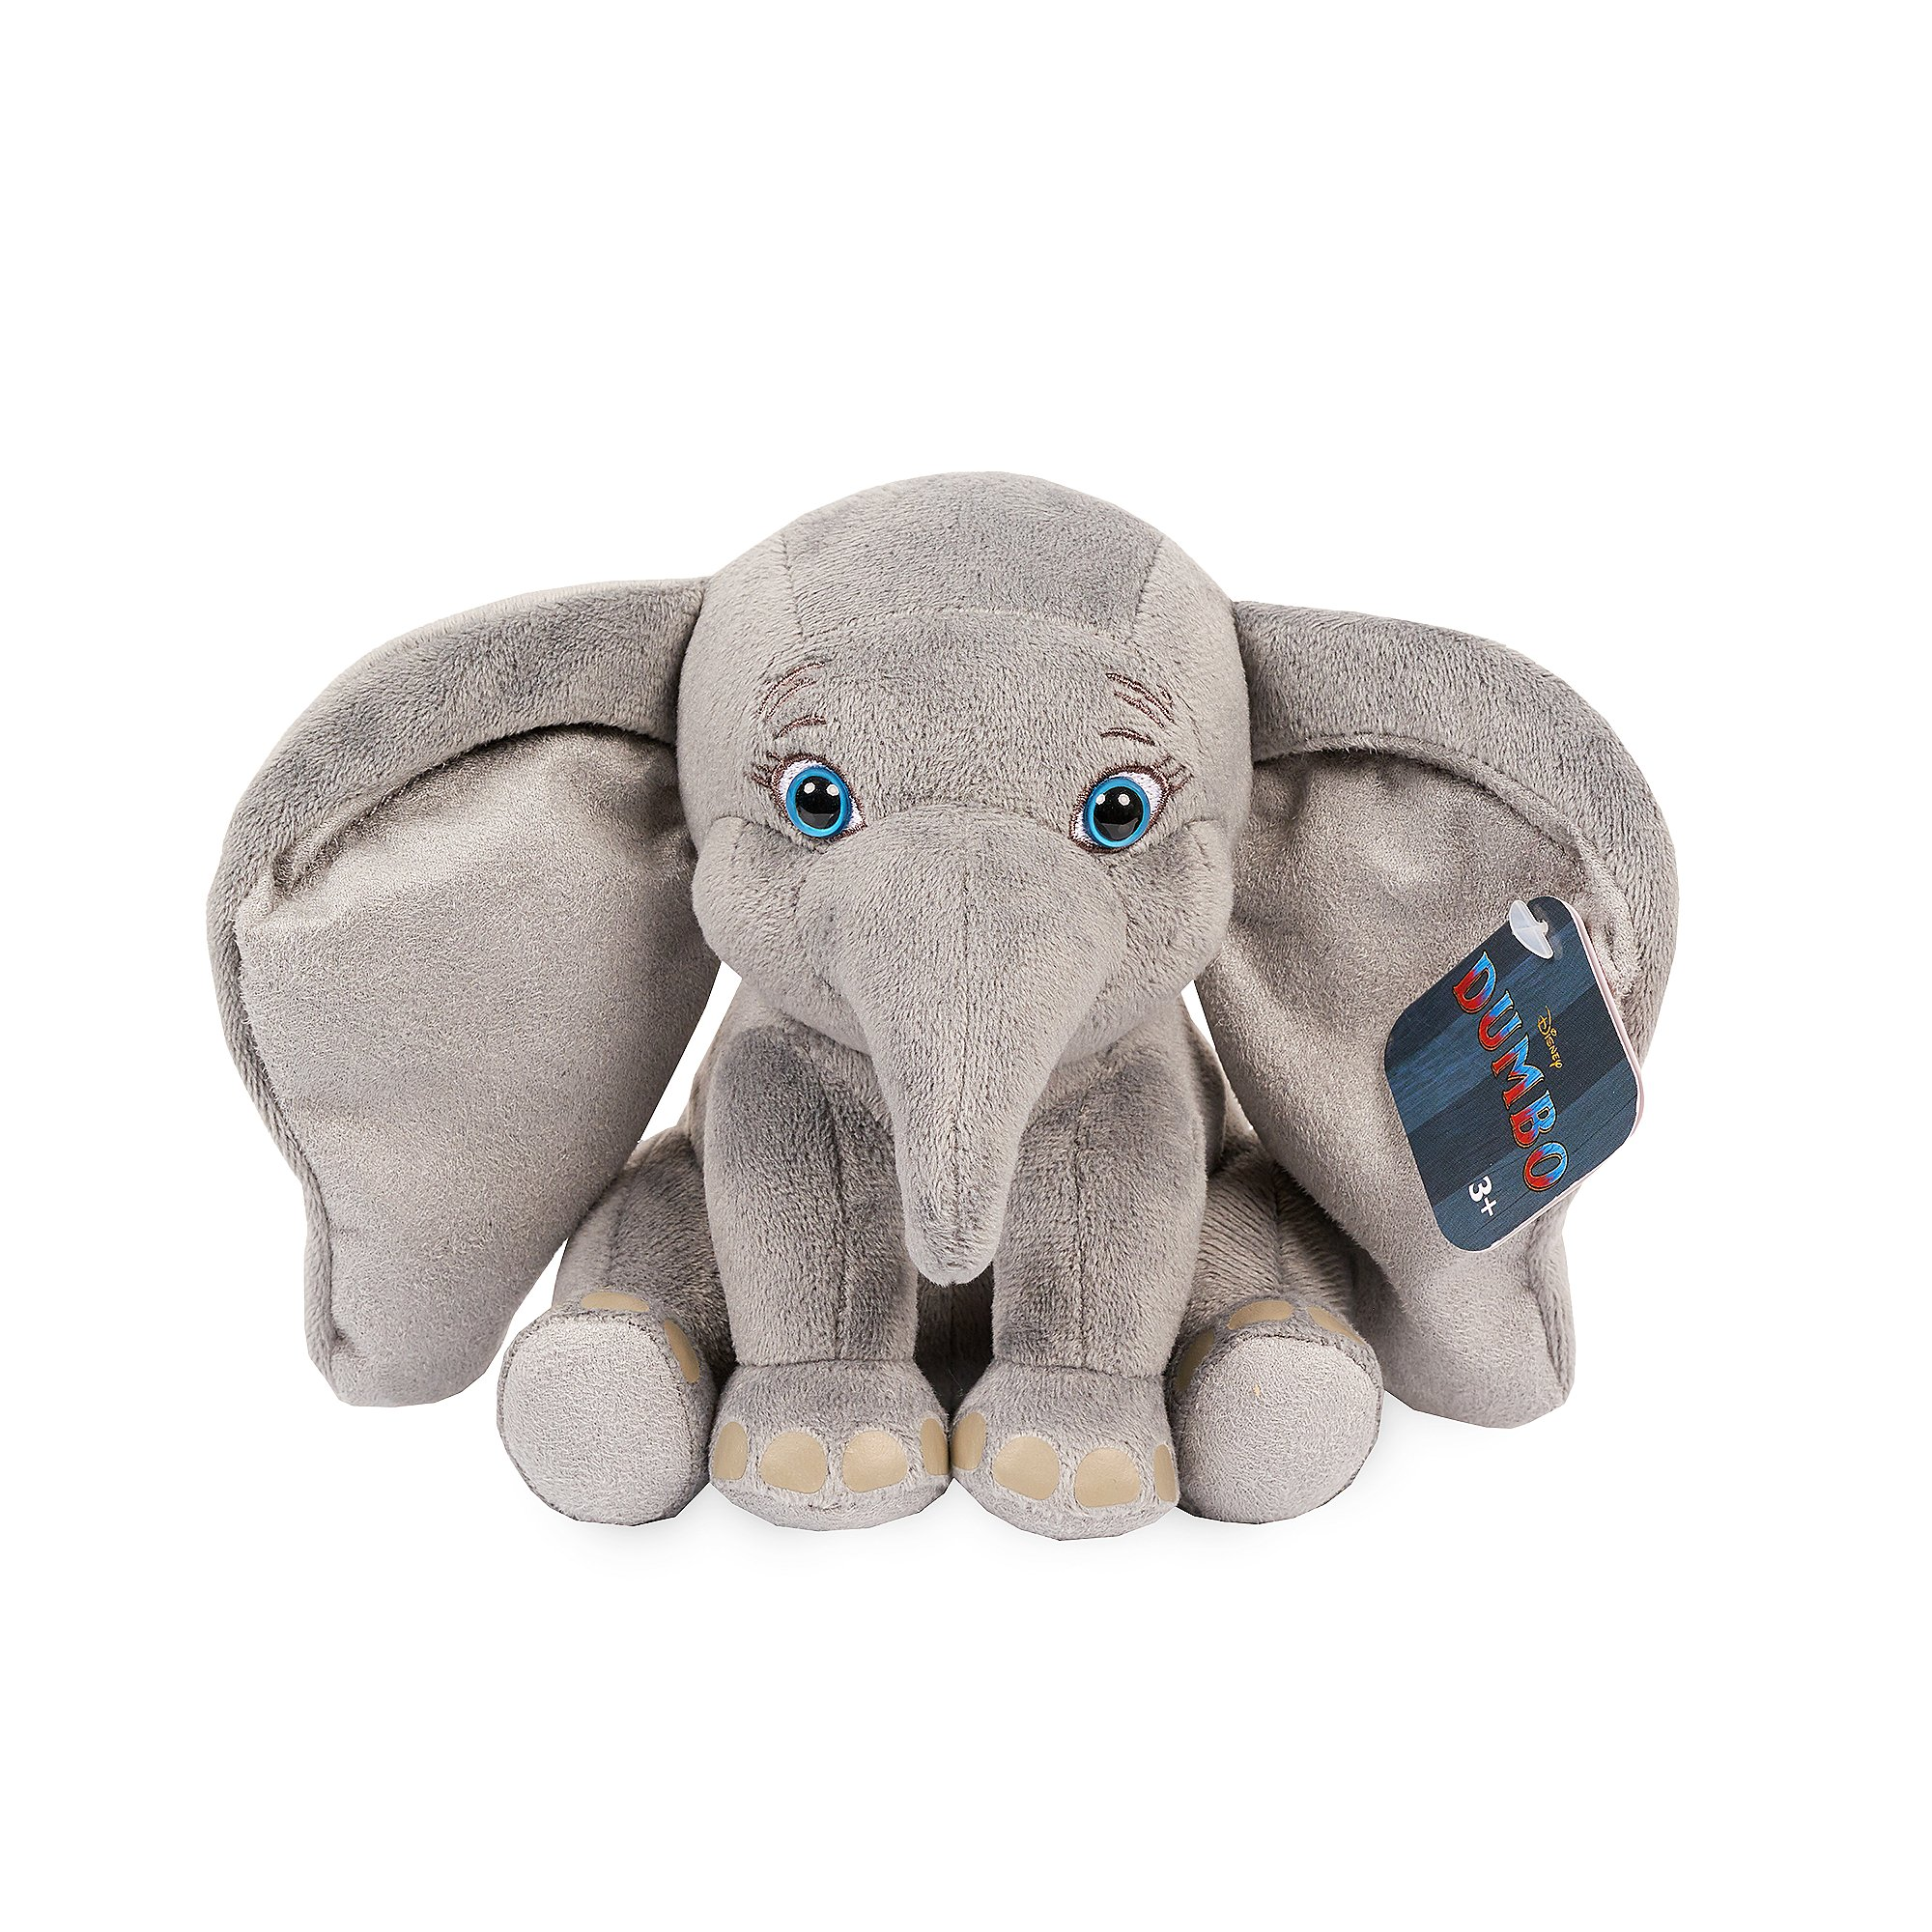 Disney Live Action Dumbo Small Dumbo Plush Soft Toy